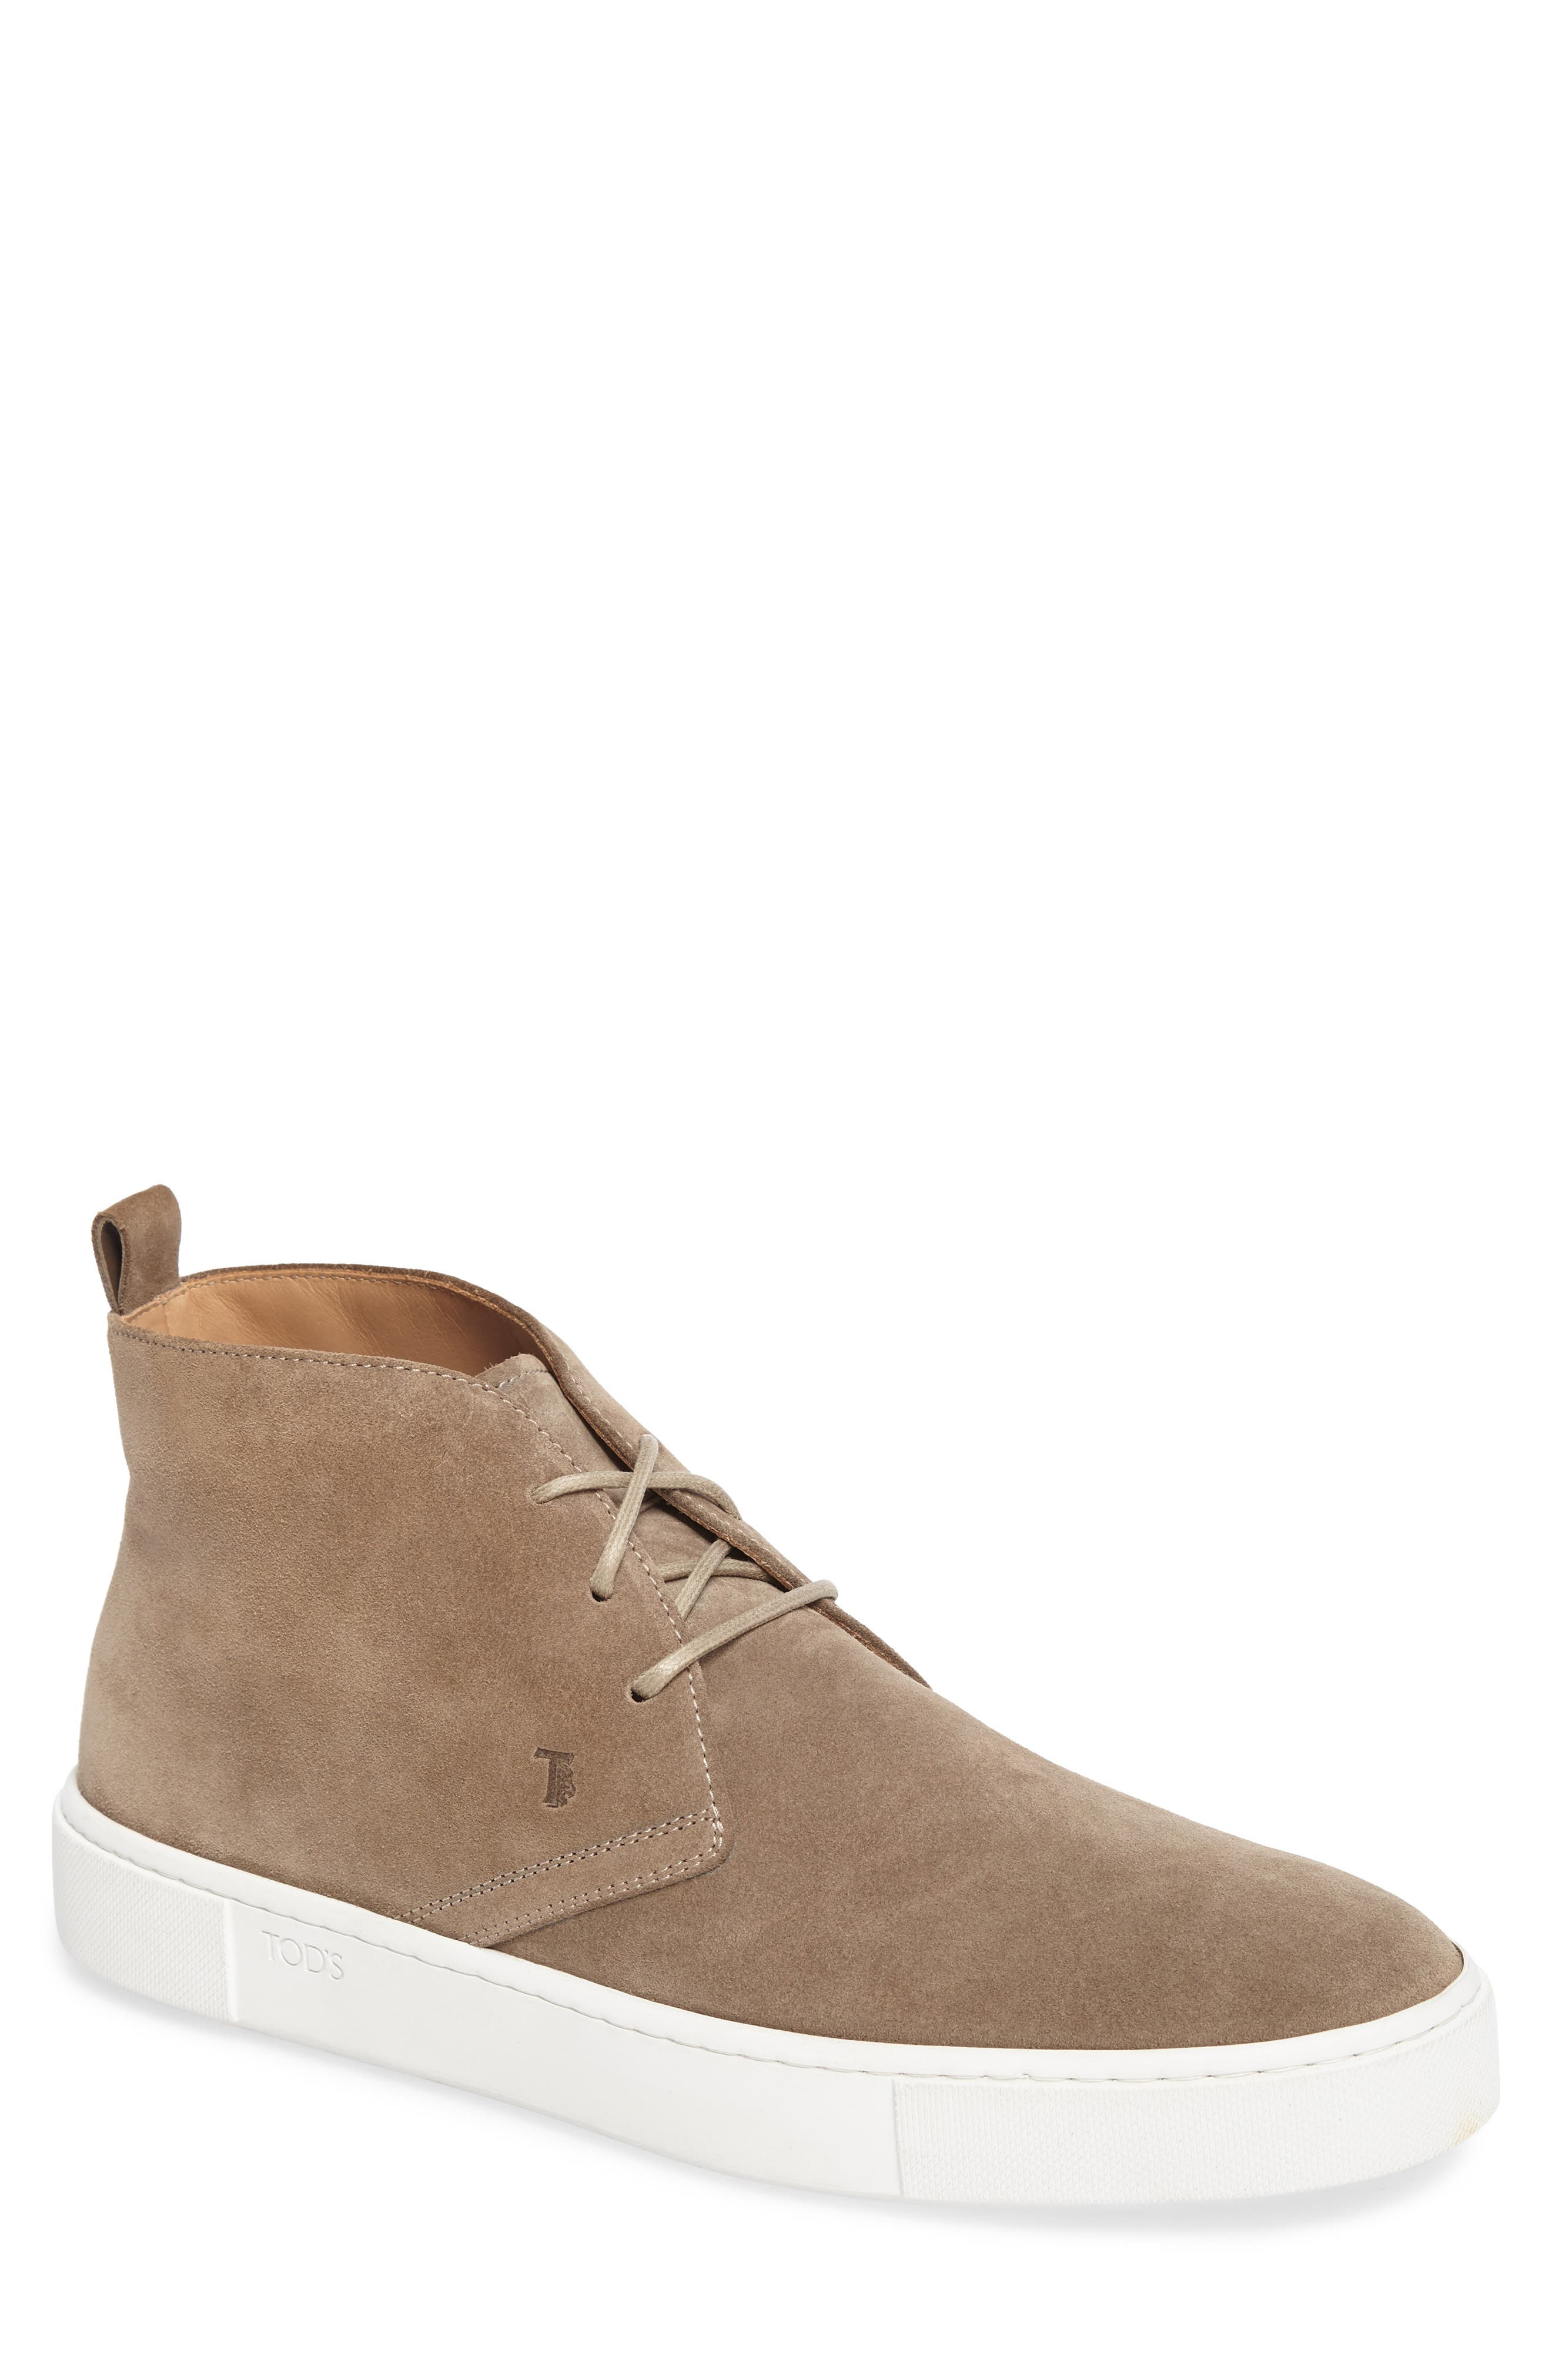 Leather Chukka Boot,                         Main,                         color, Brown Suede